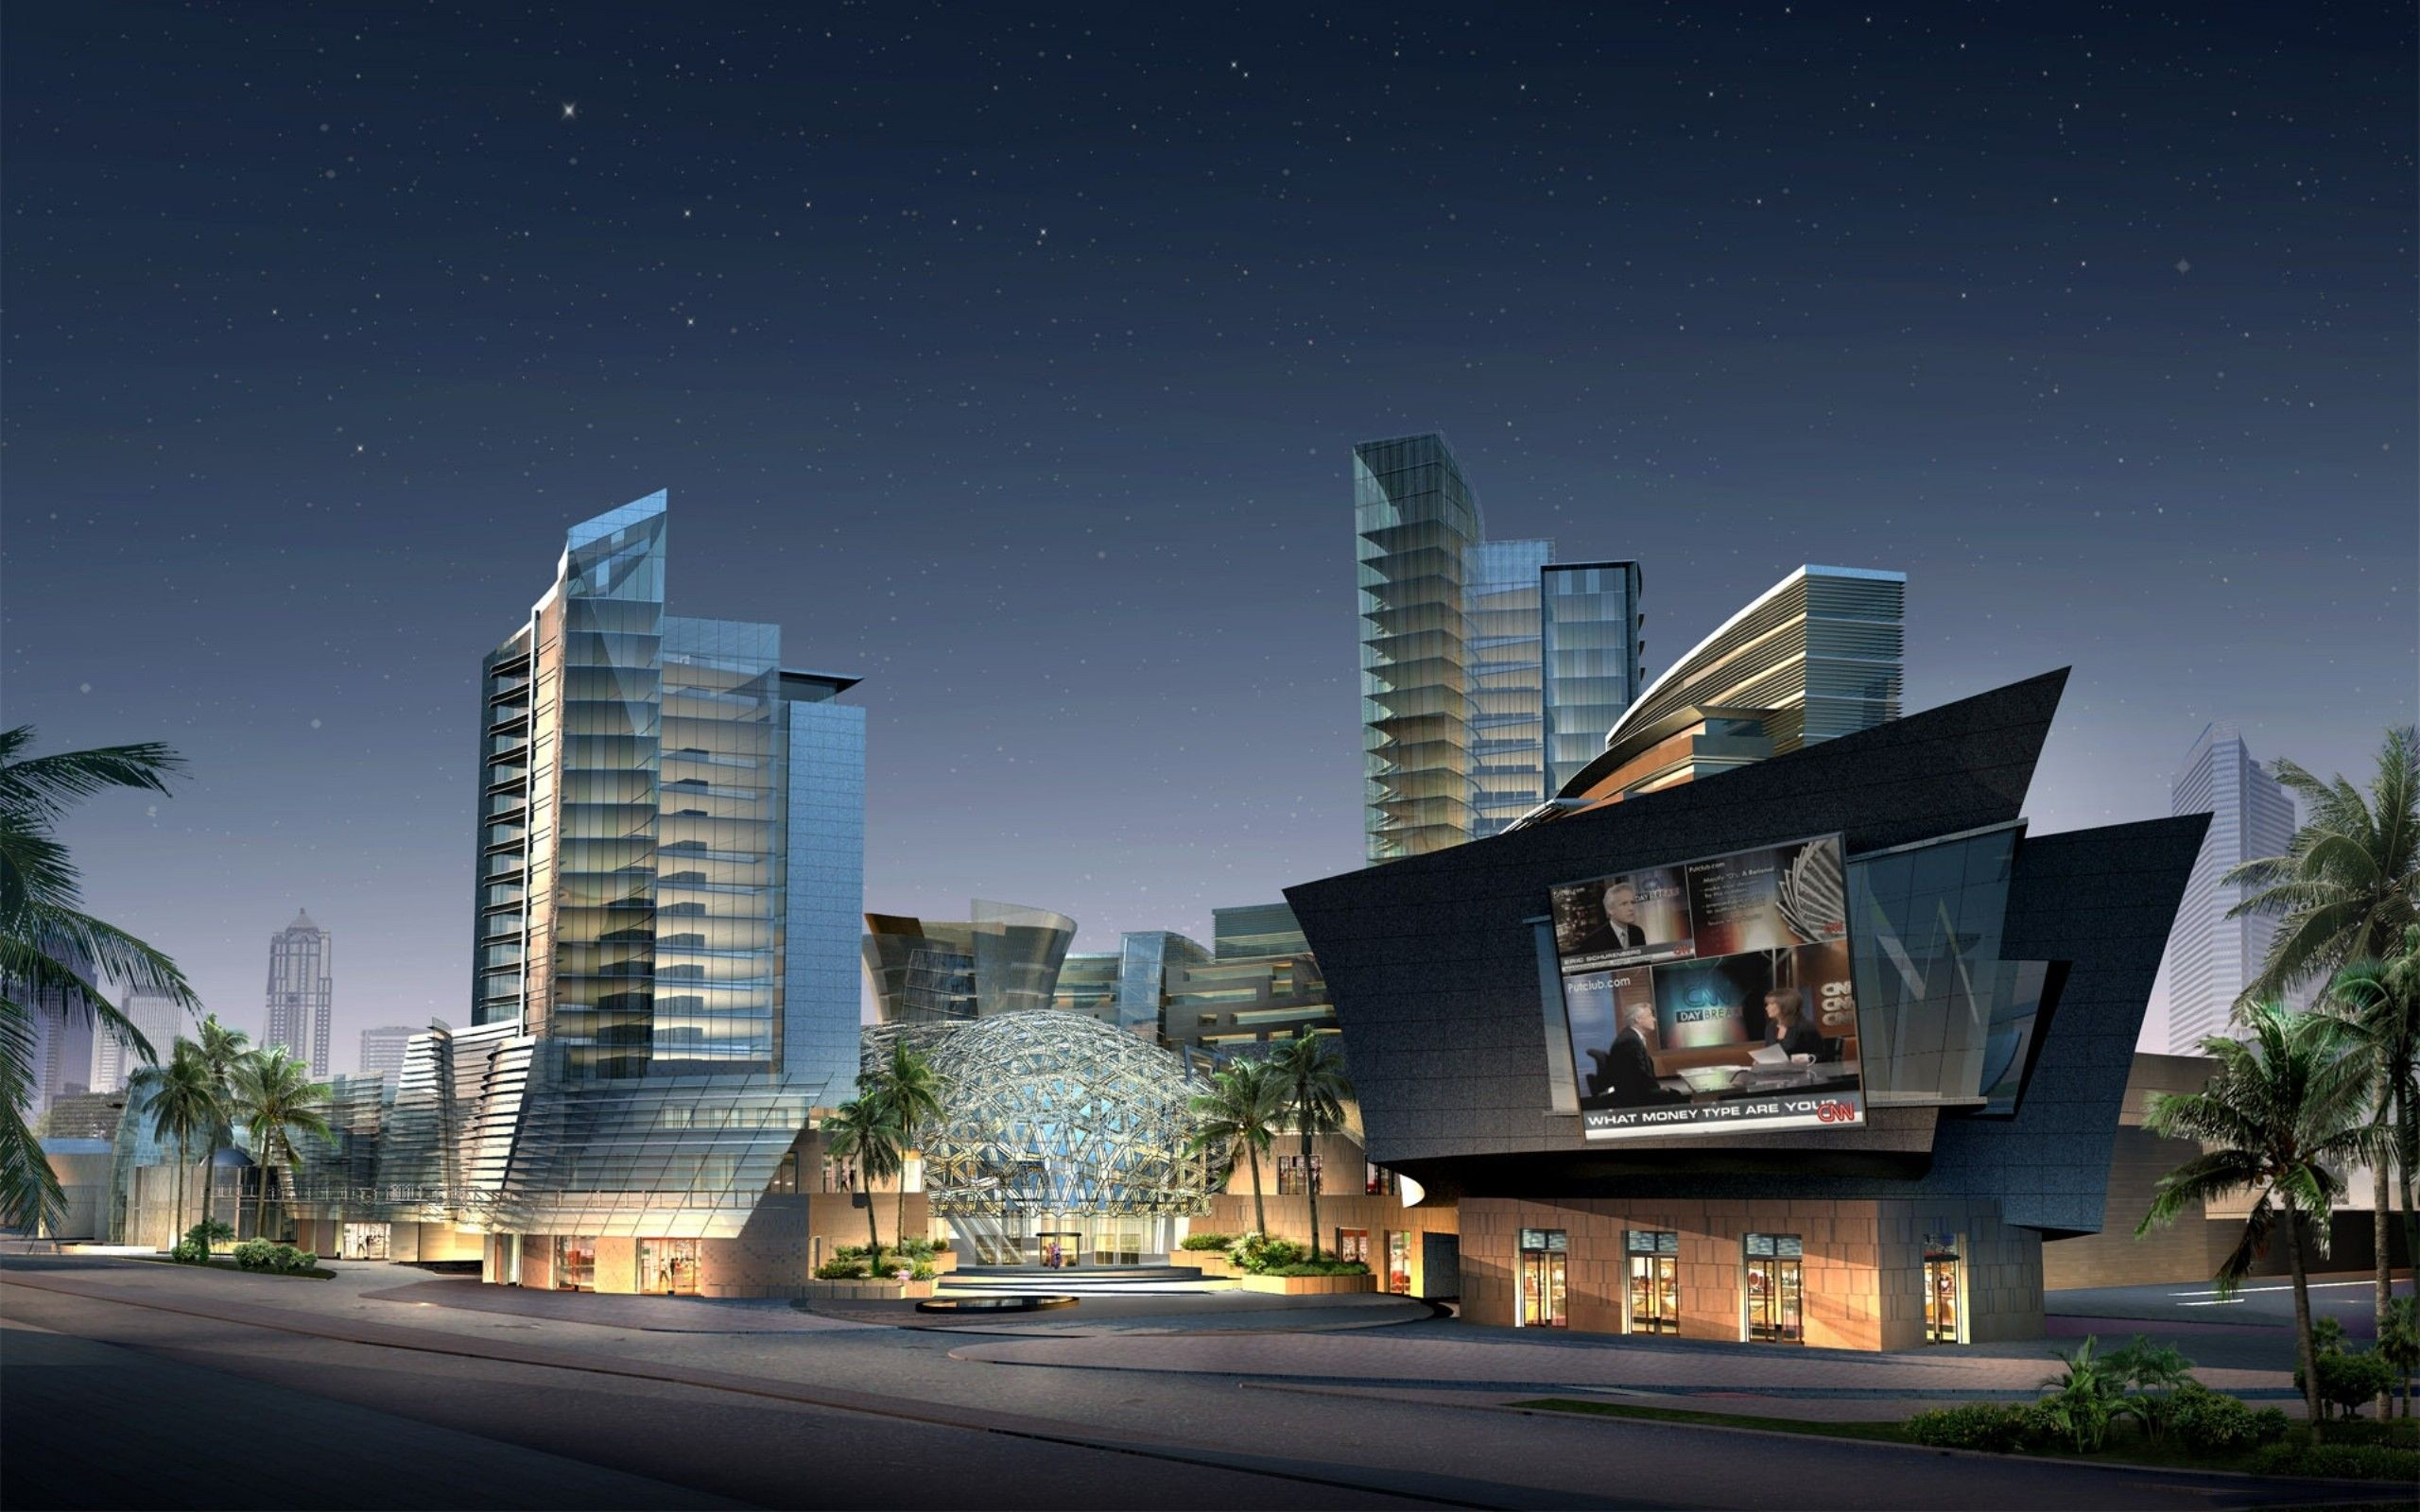 Download Wallpaper Skyscrapers House Night 2560x1600 3d Model Of Shopping Mall At